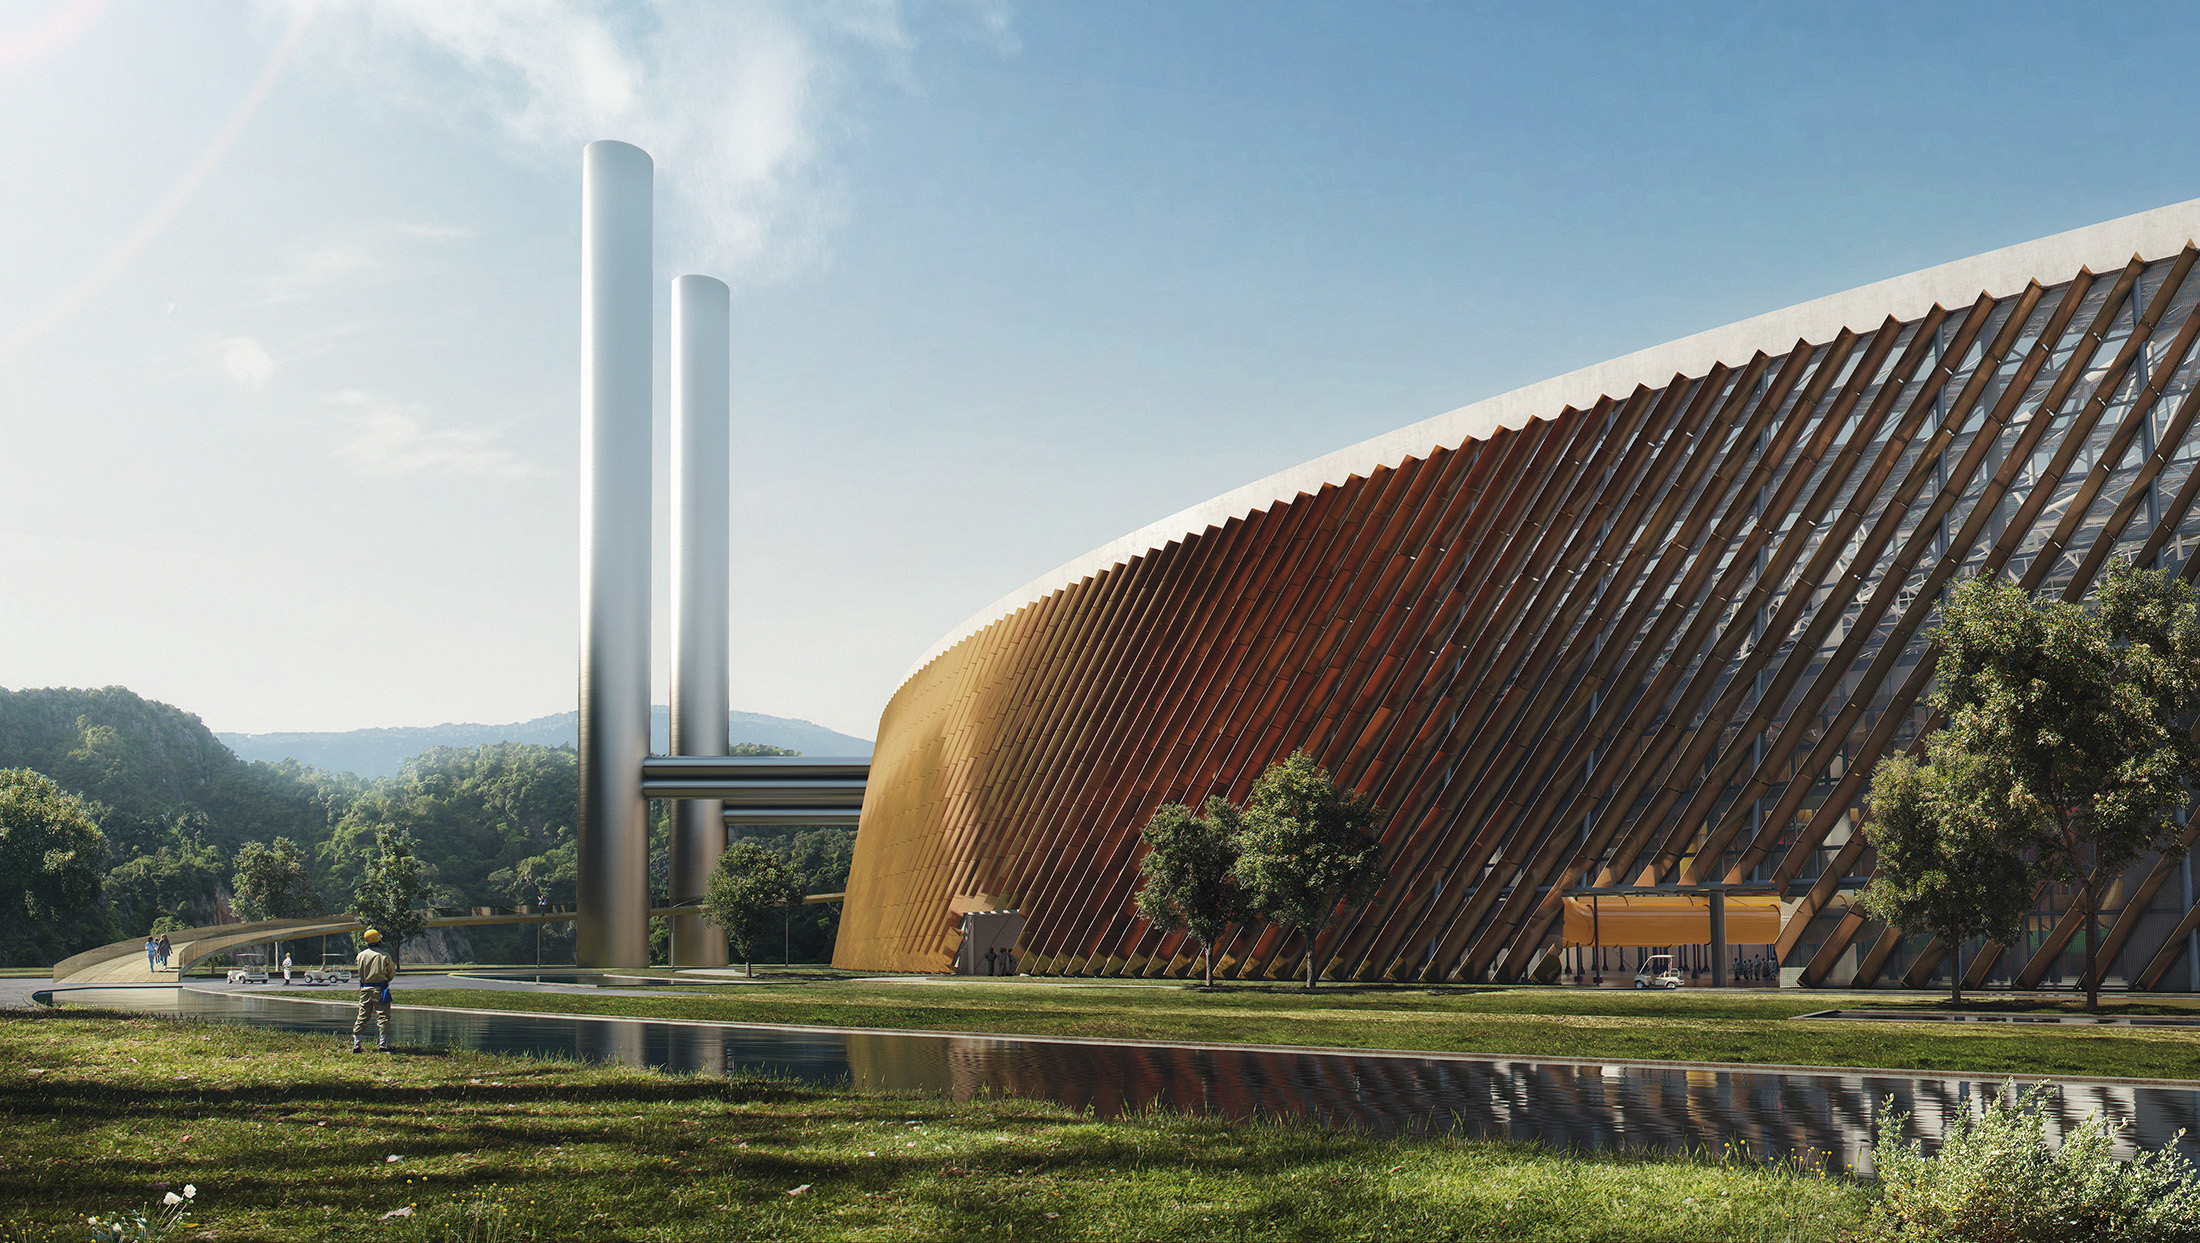 Schmidt Hammer Lassen Architects, Waste-to-Energy Plant, China, 2016